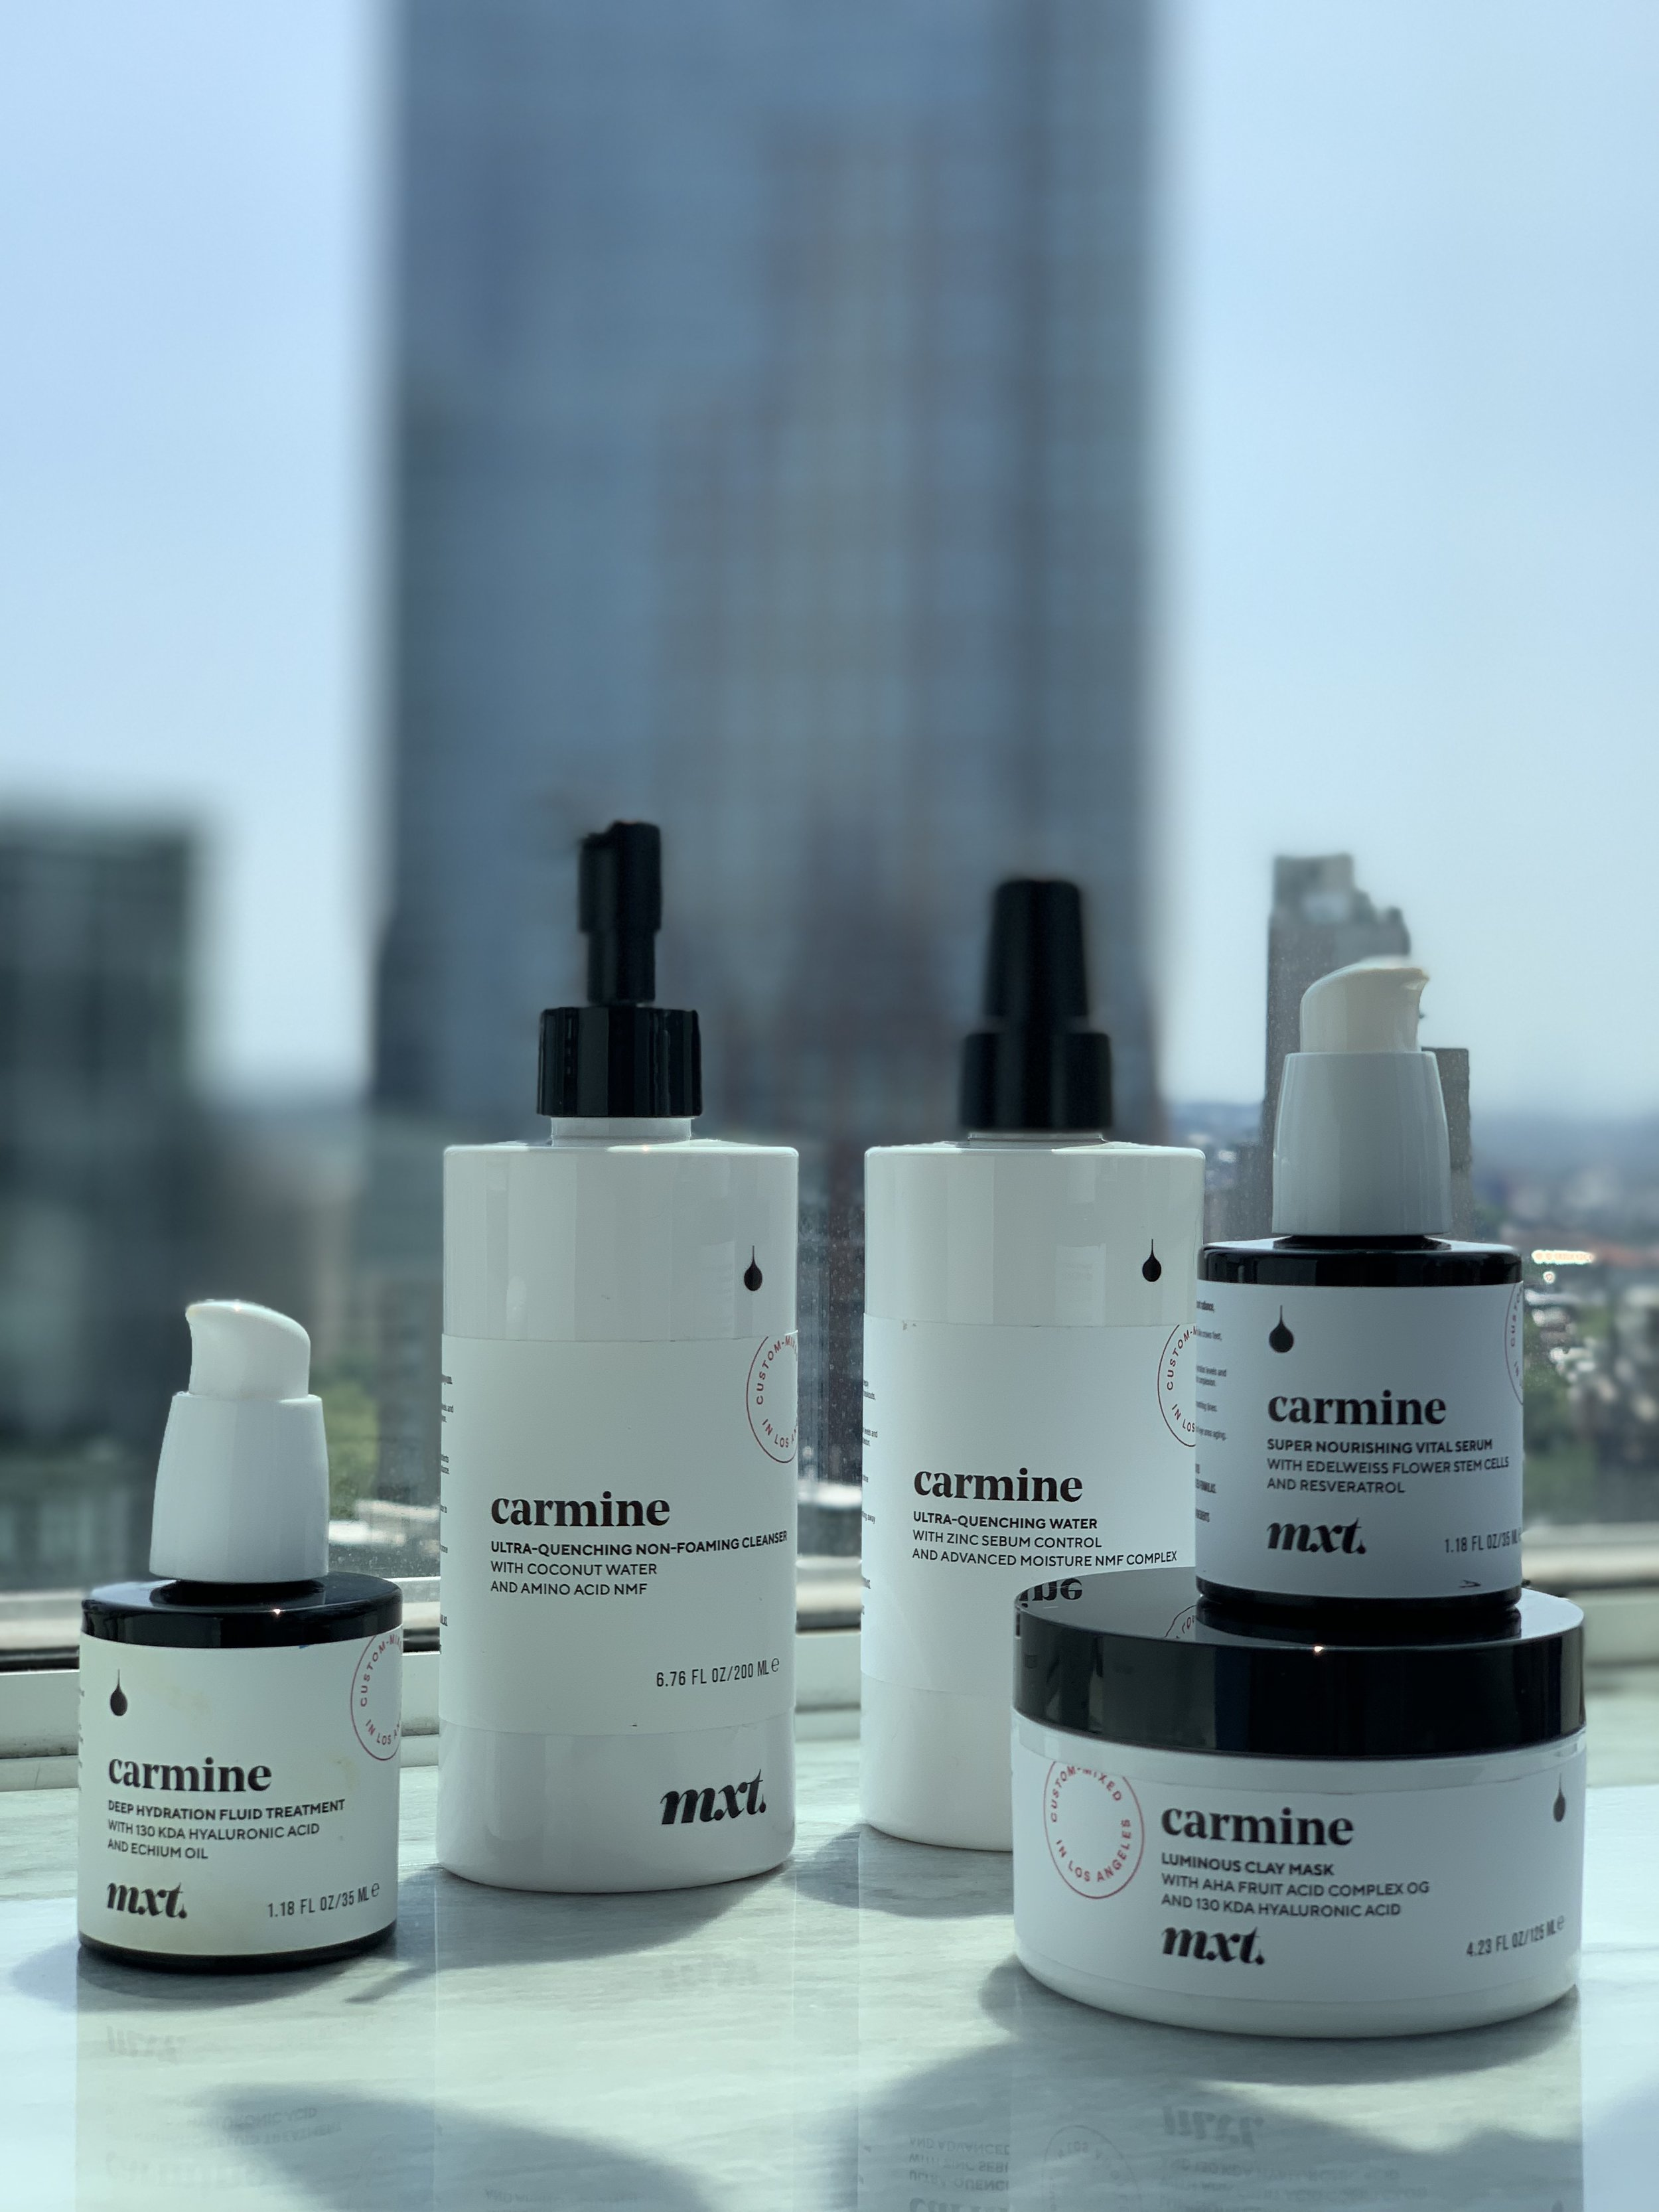 My full Mxt. x Carmine skincare line-up!